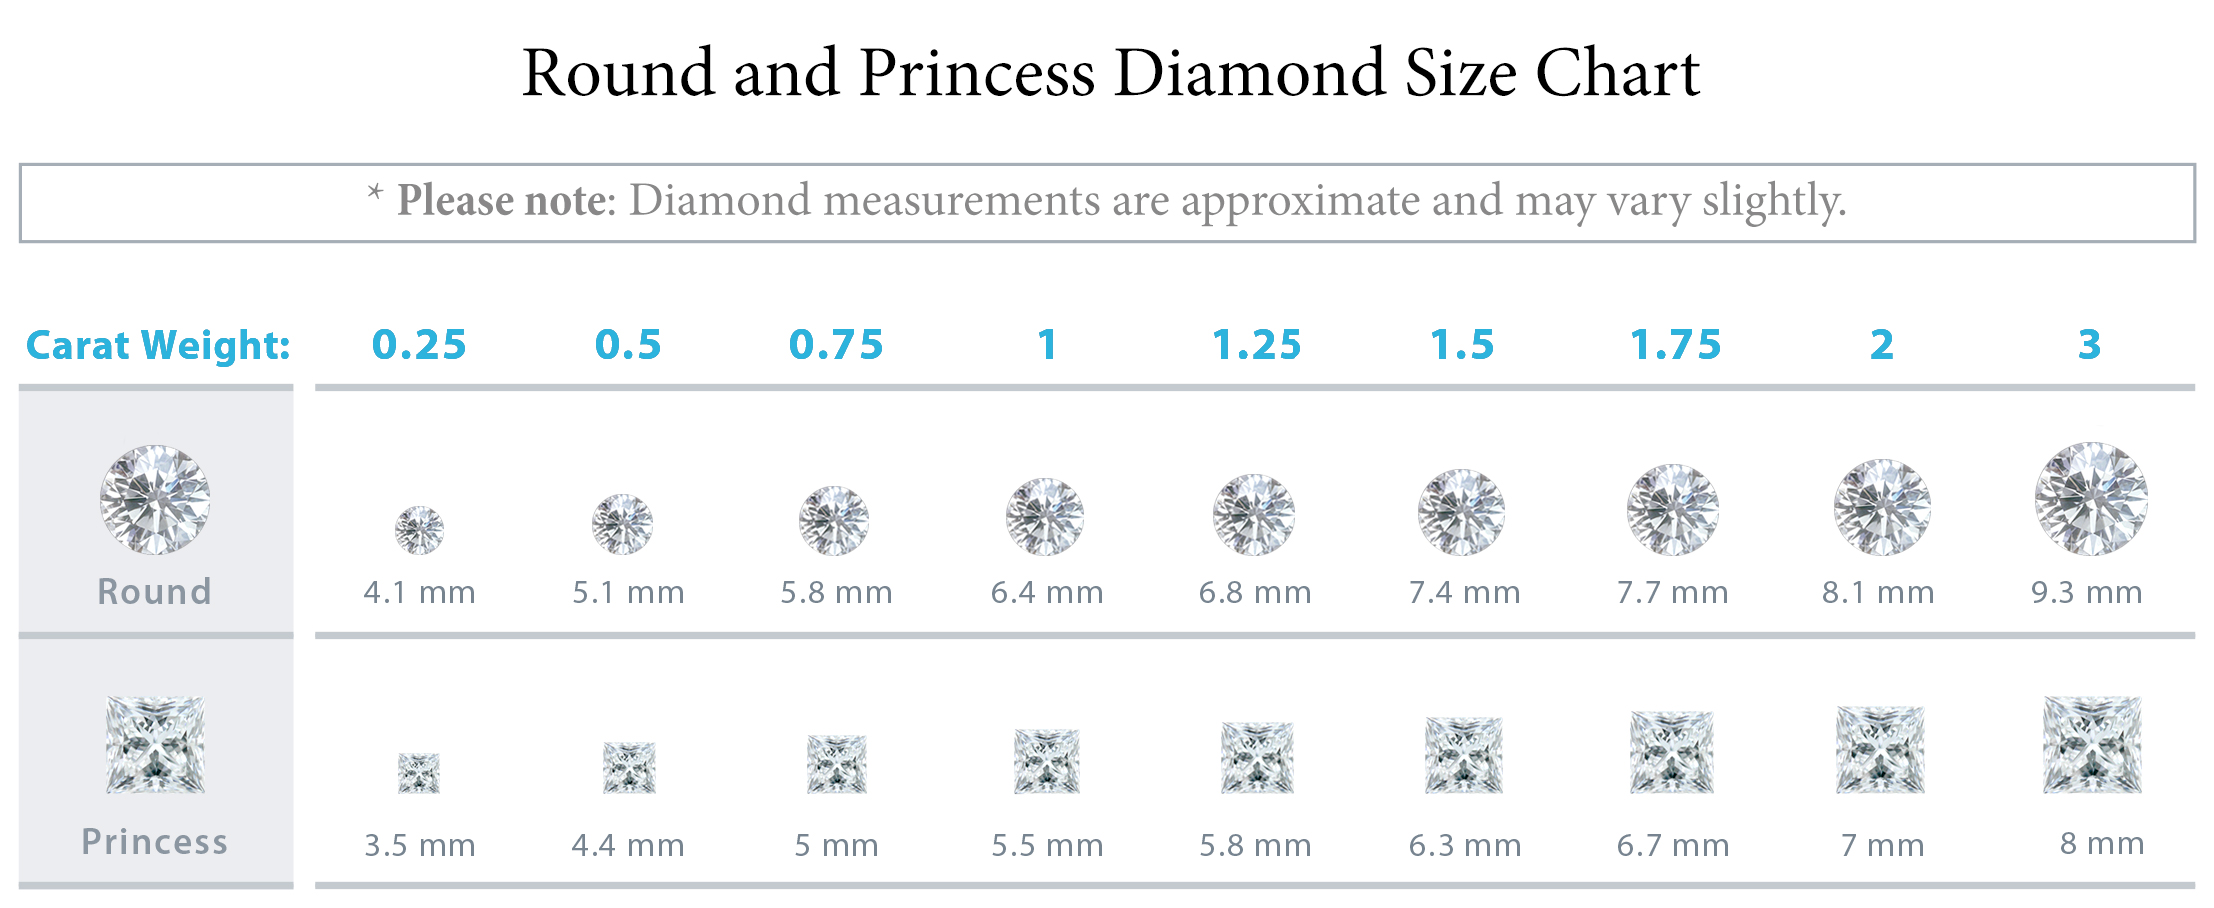 fluorescent data flourescent diamonds journal photographed in over typical color lighting revisited blue pricescope artificial base of grading diamond issues